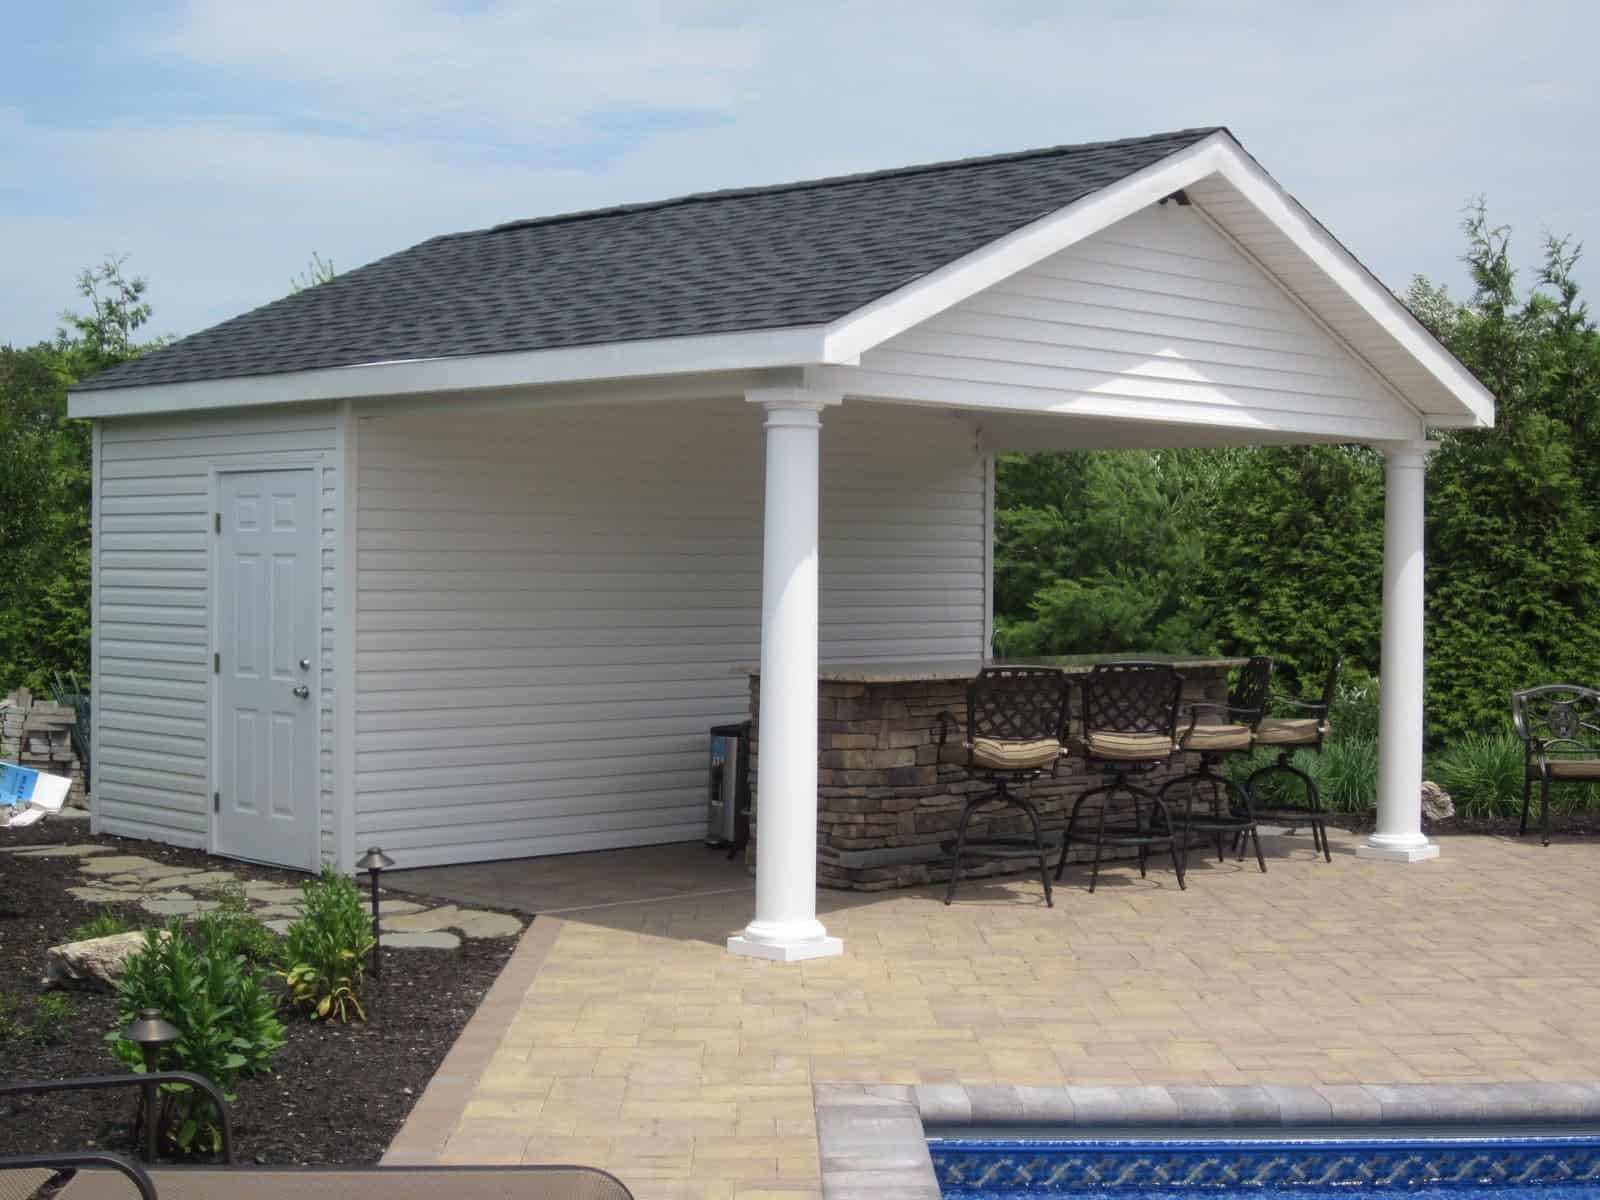 16' x 18' Pool House/Cabana with outdoor bar, bathroom, and storage room - Dix Hills, Long Island NY